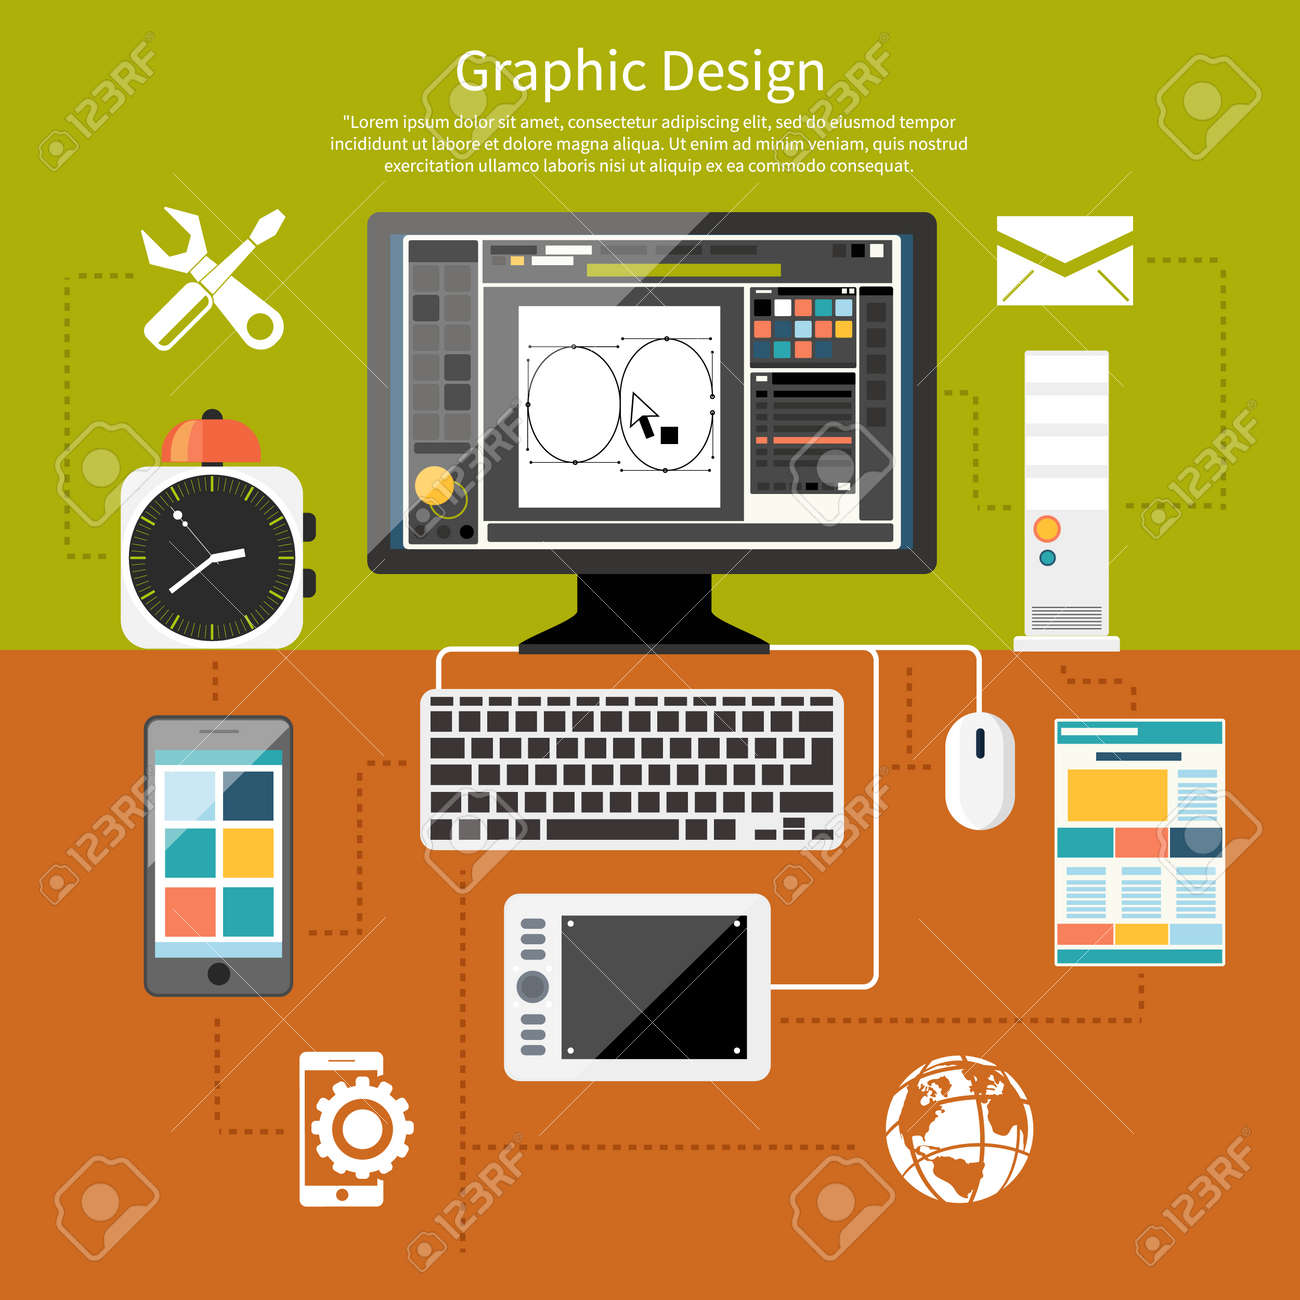 Concept For Graphic Design Designer Tools And Software In Flat Royalty Free Cliparts Vectors And Stock Illustration Image 38419630